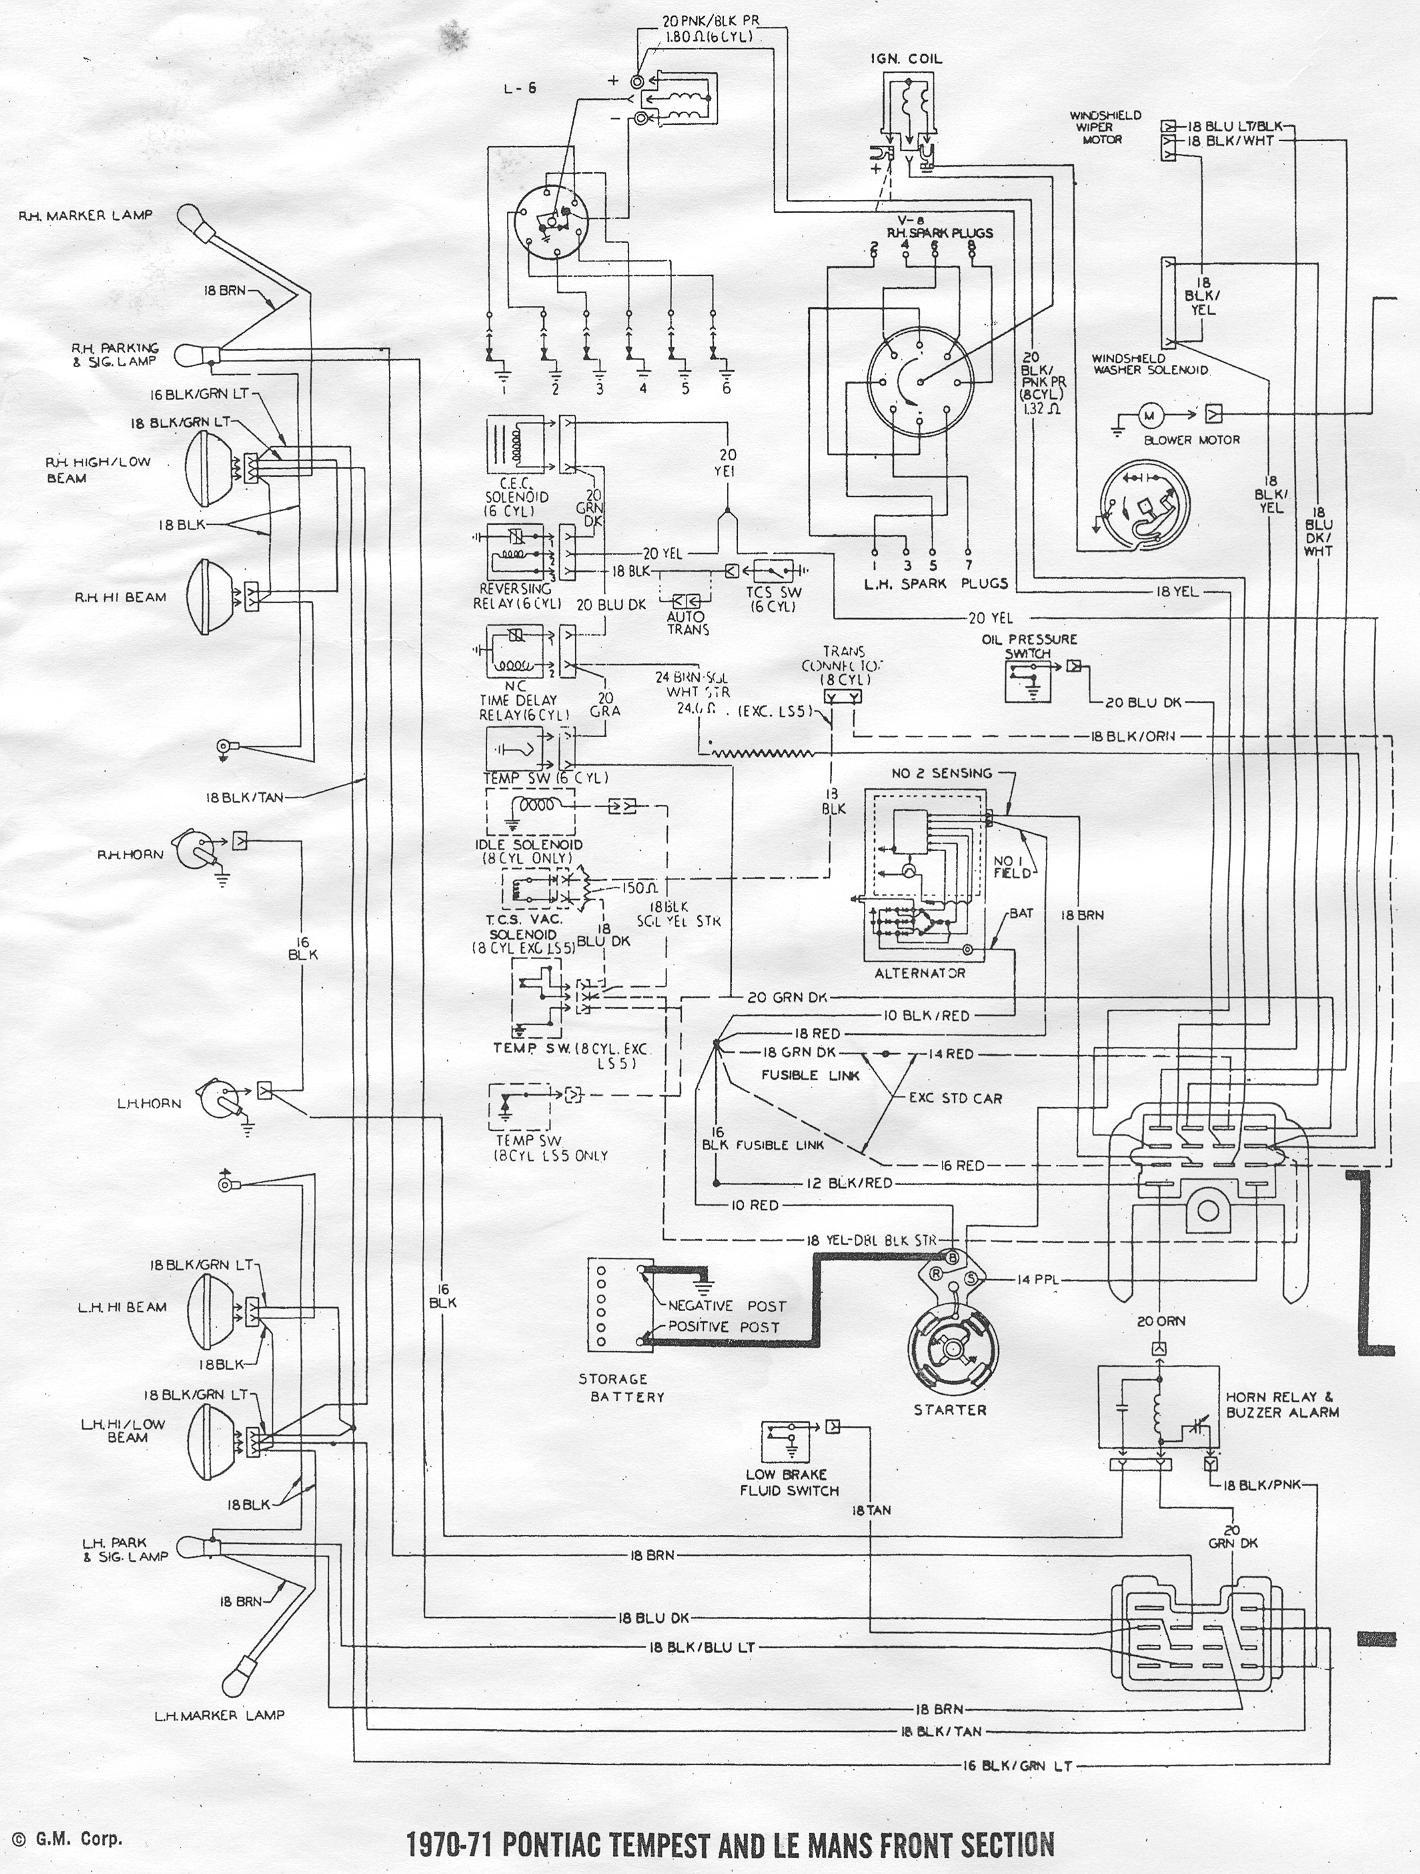 Perfect 75 Cj5 Wiring Diagram Festooning - Electrical Diagram Ideas ...